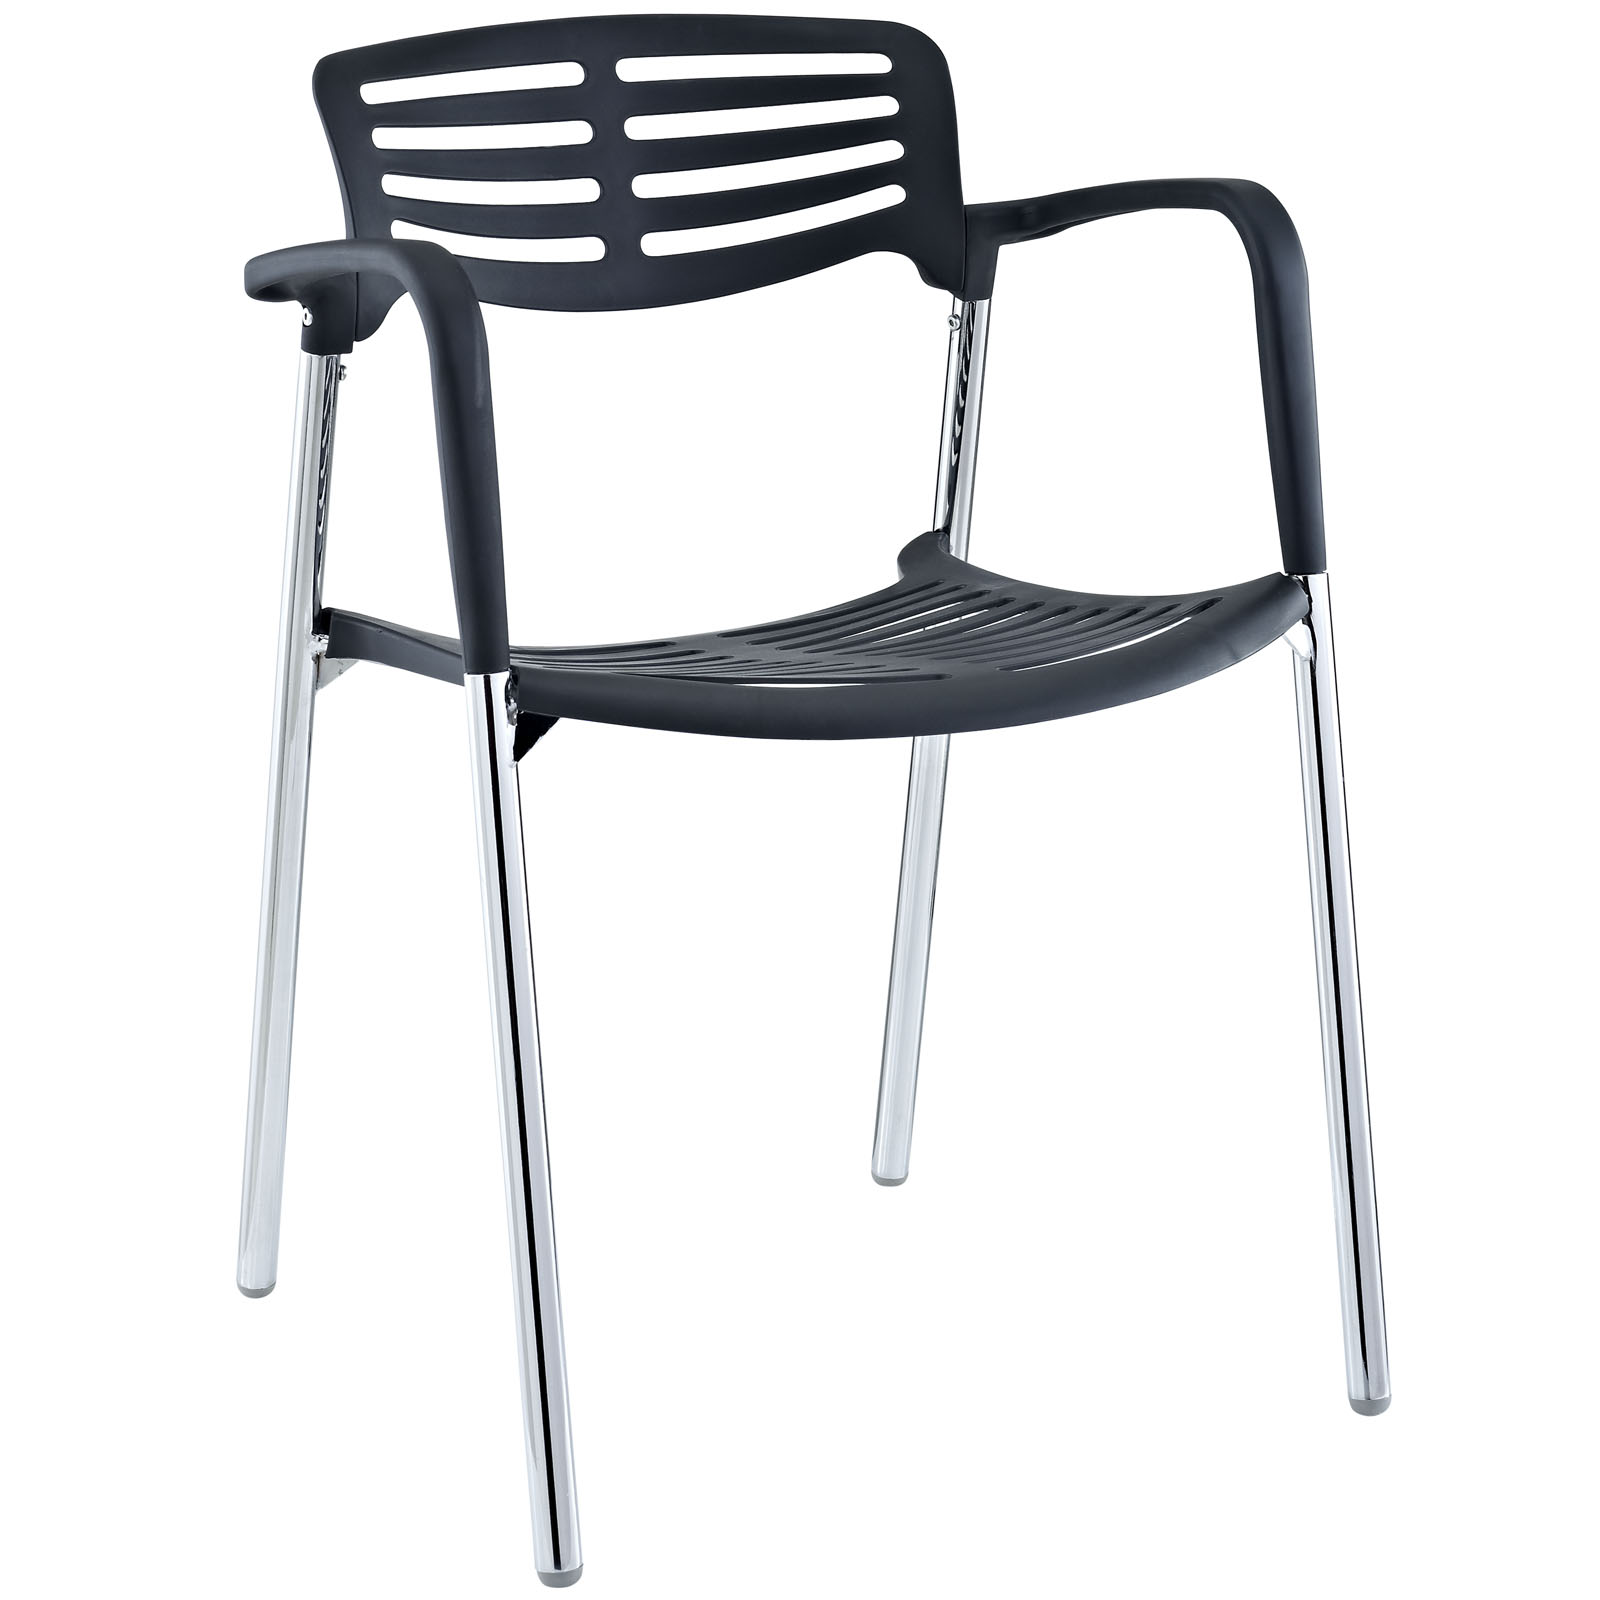 Modern Contemporary Kitchen Stacking Chair Black (Outdoor and Indoor)